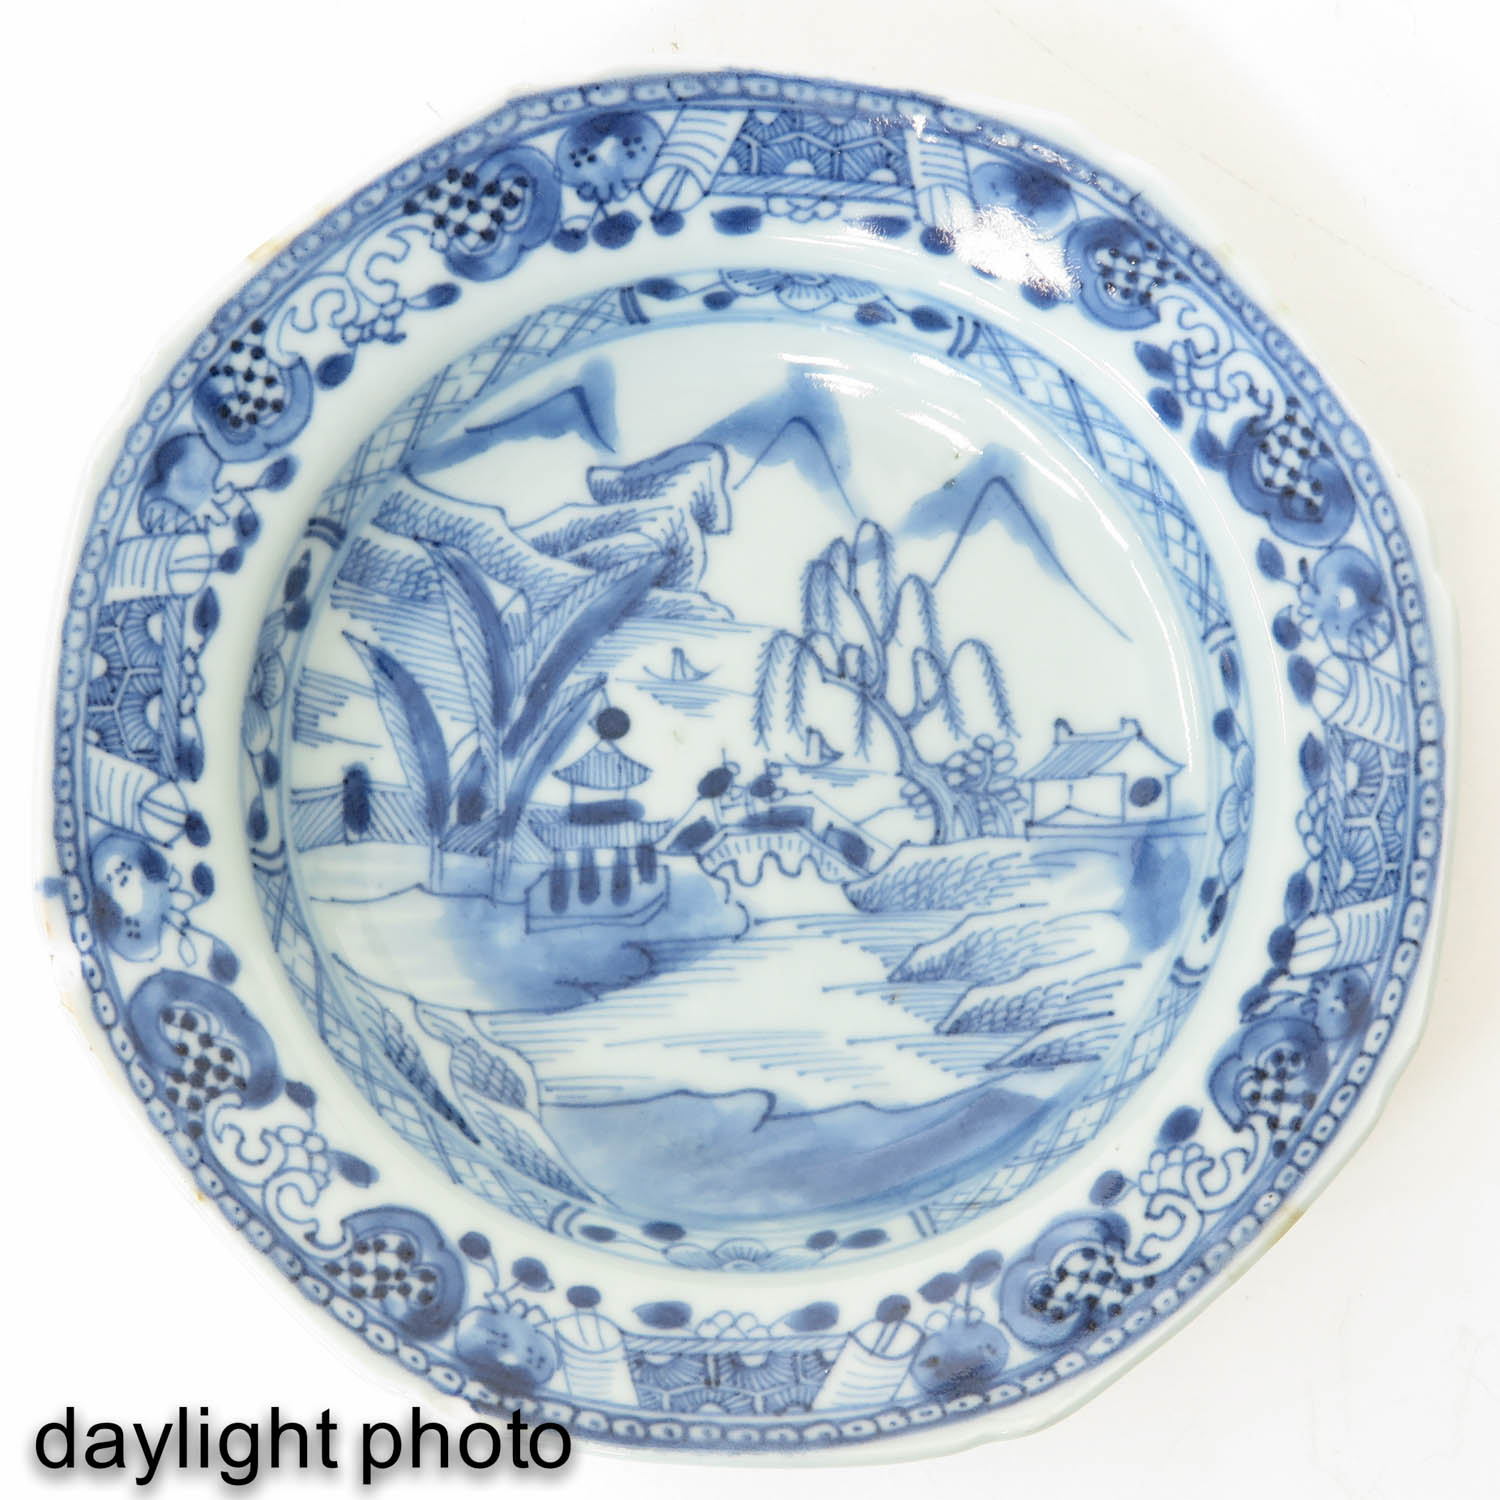 A Series of 8 Blue and White Plates - Image 7 of 9